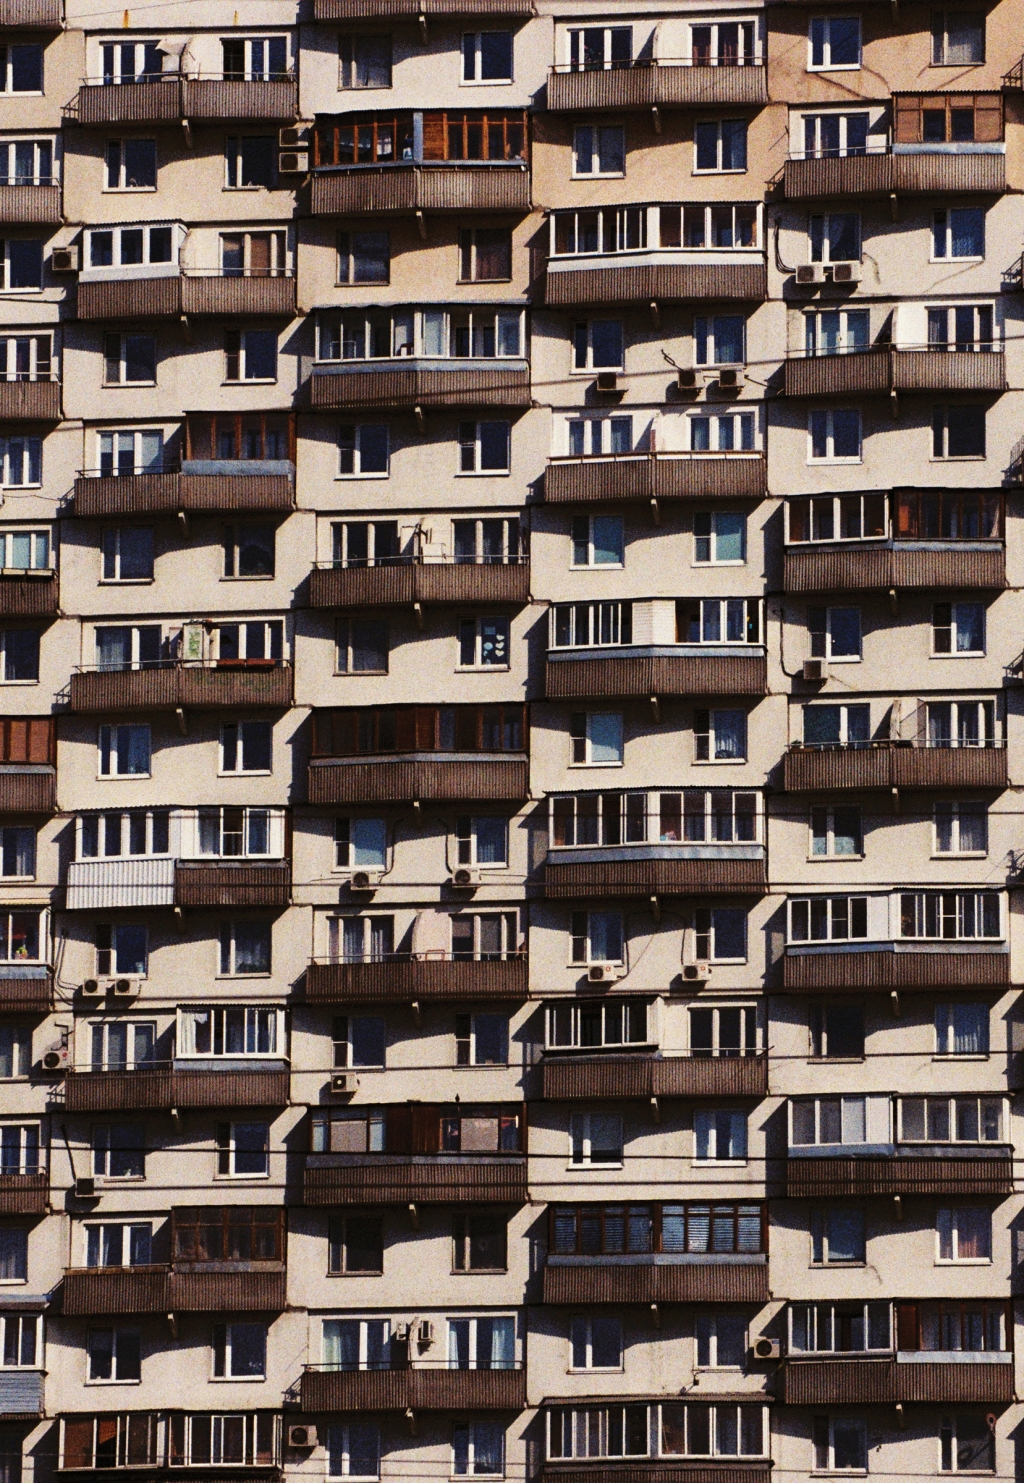 """Archetecture is just amazing in Moscow,"" says Boogie. ""It's just this brutalist, socialist architecture. I love it. I could just do a book of these buildings."""